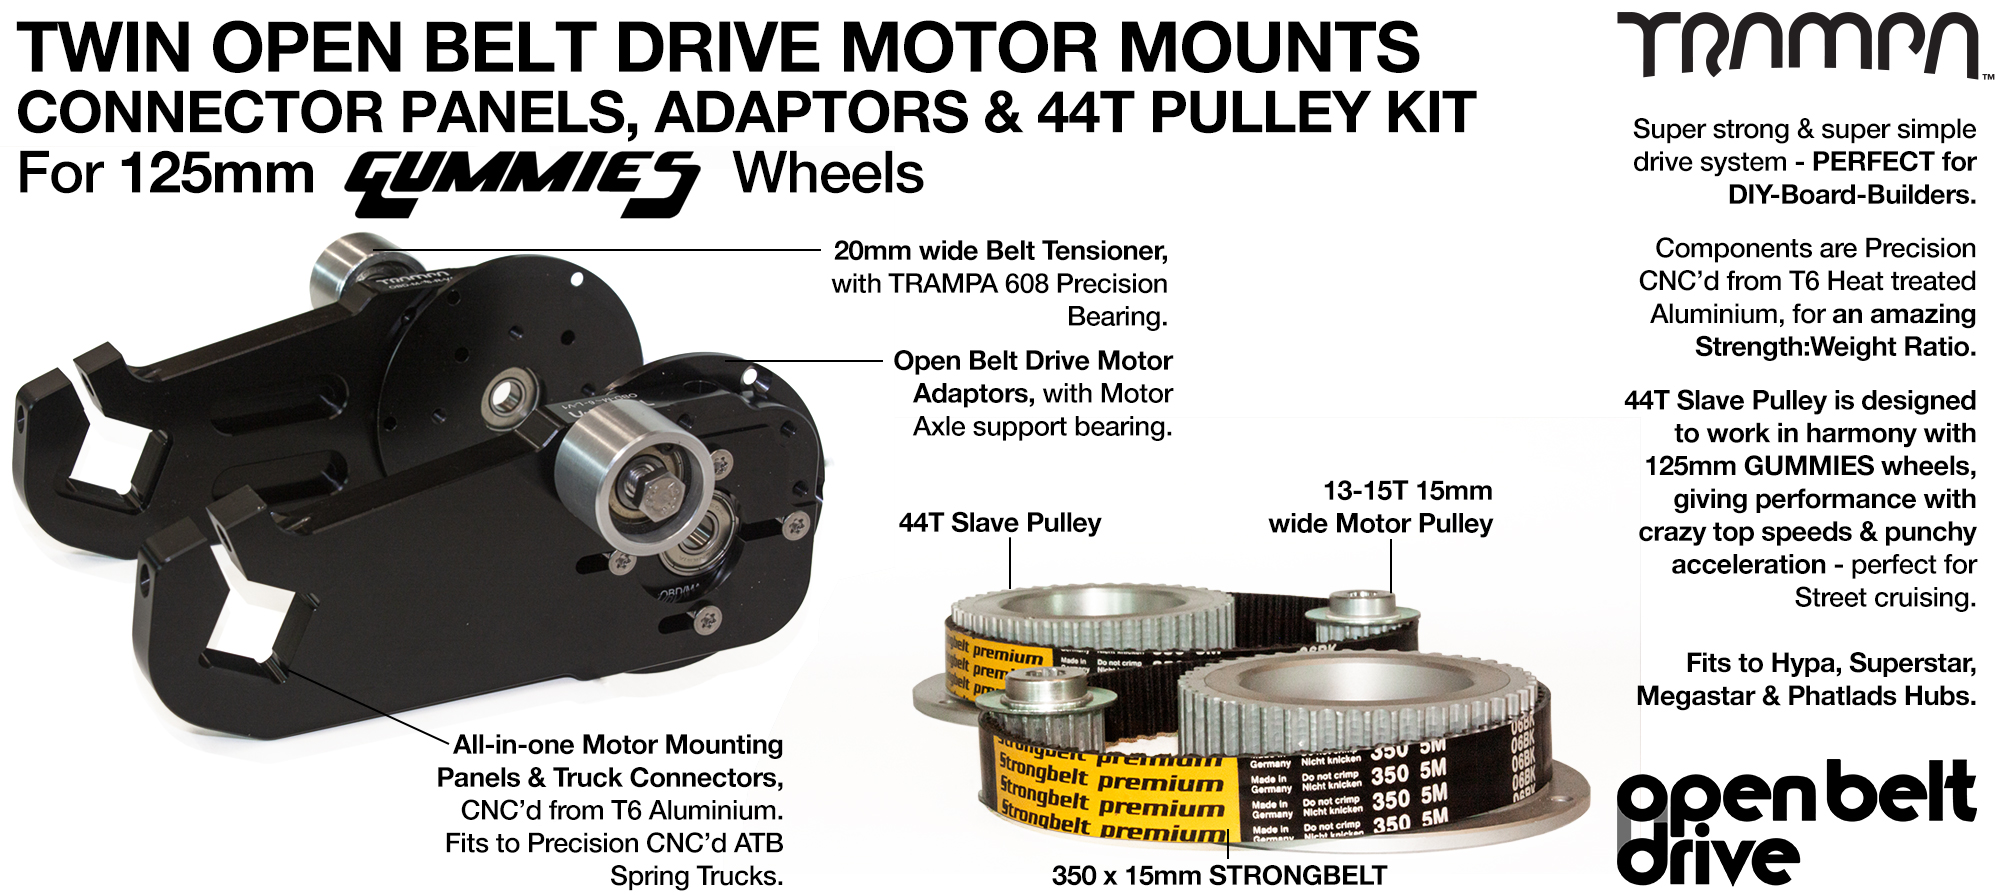 66T OBD Motor Mount & 44 tooth Pulley - TWIN